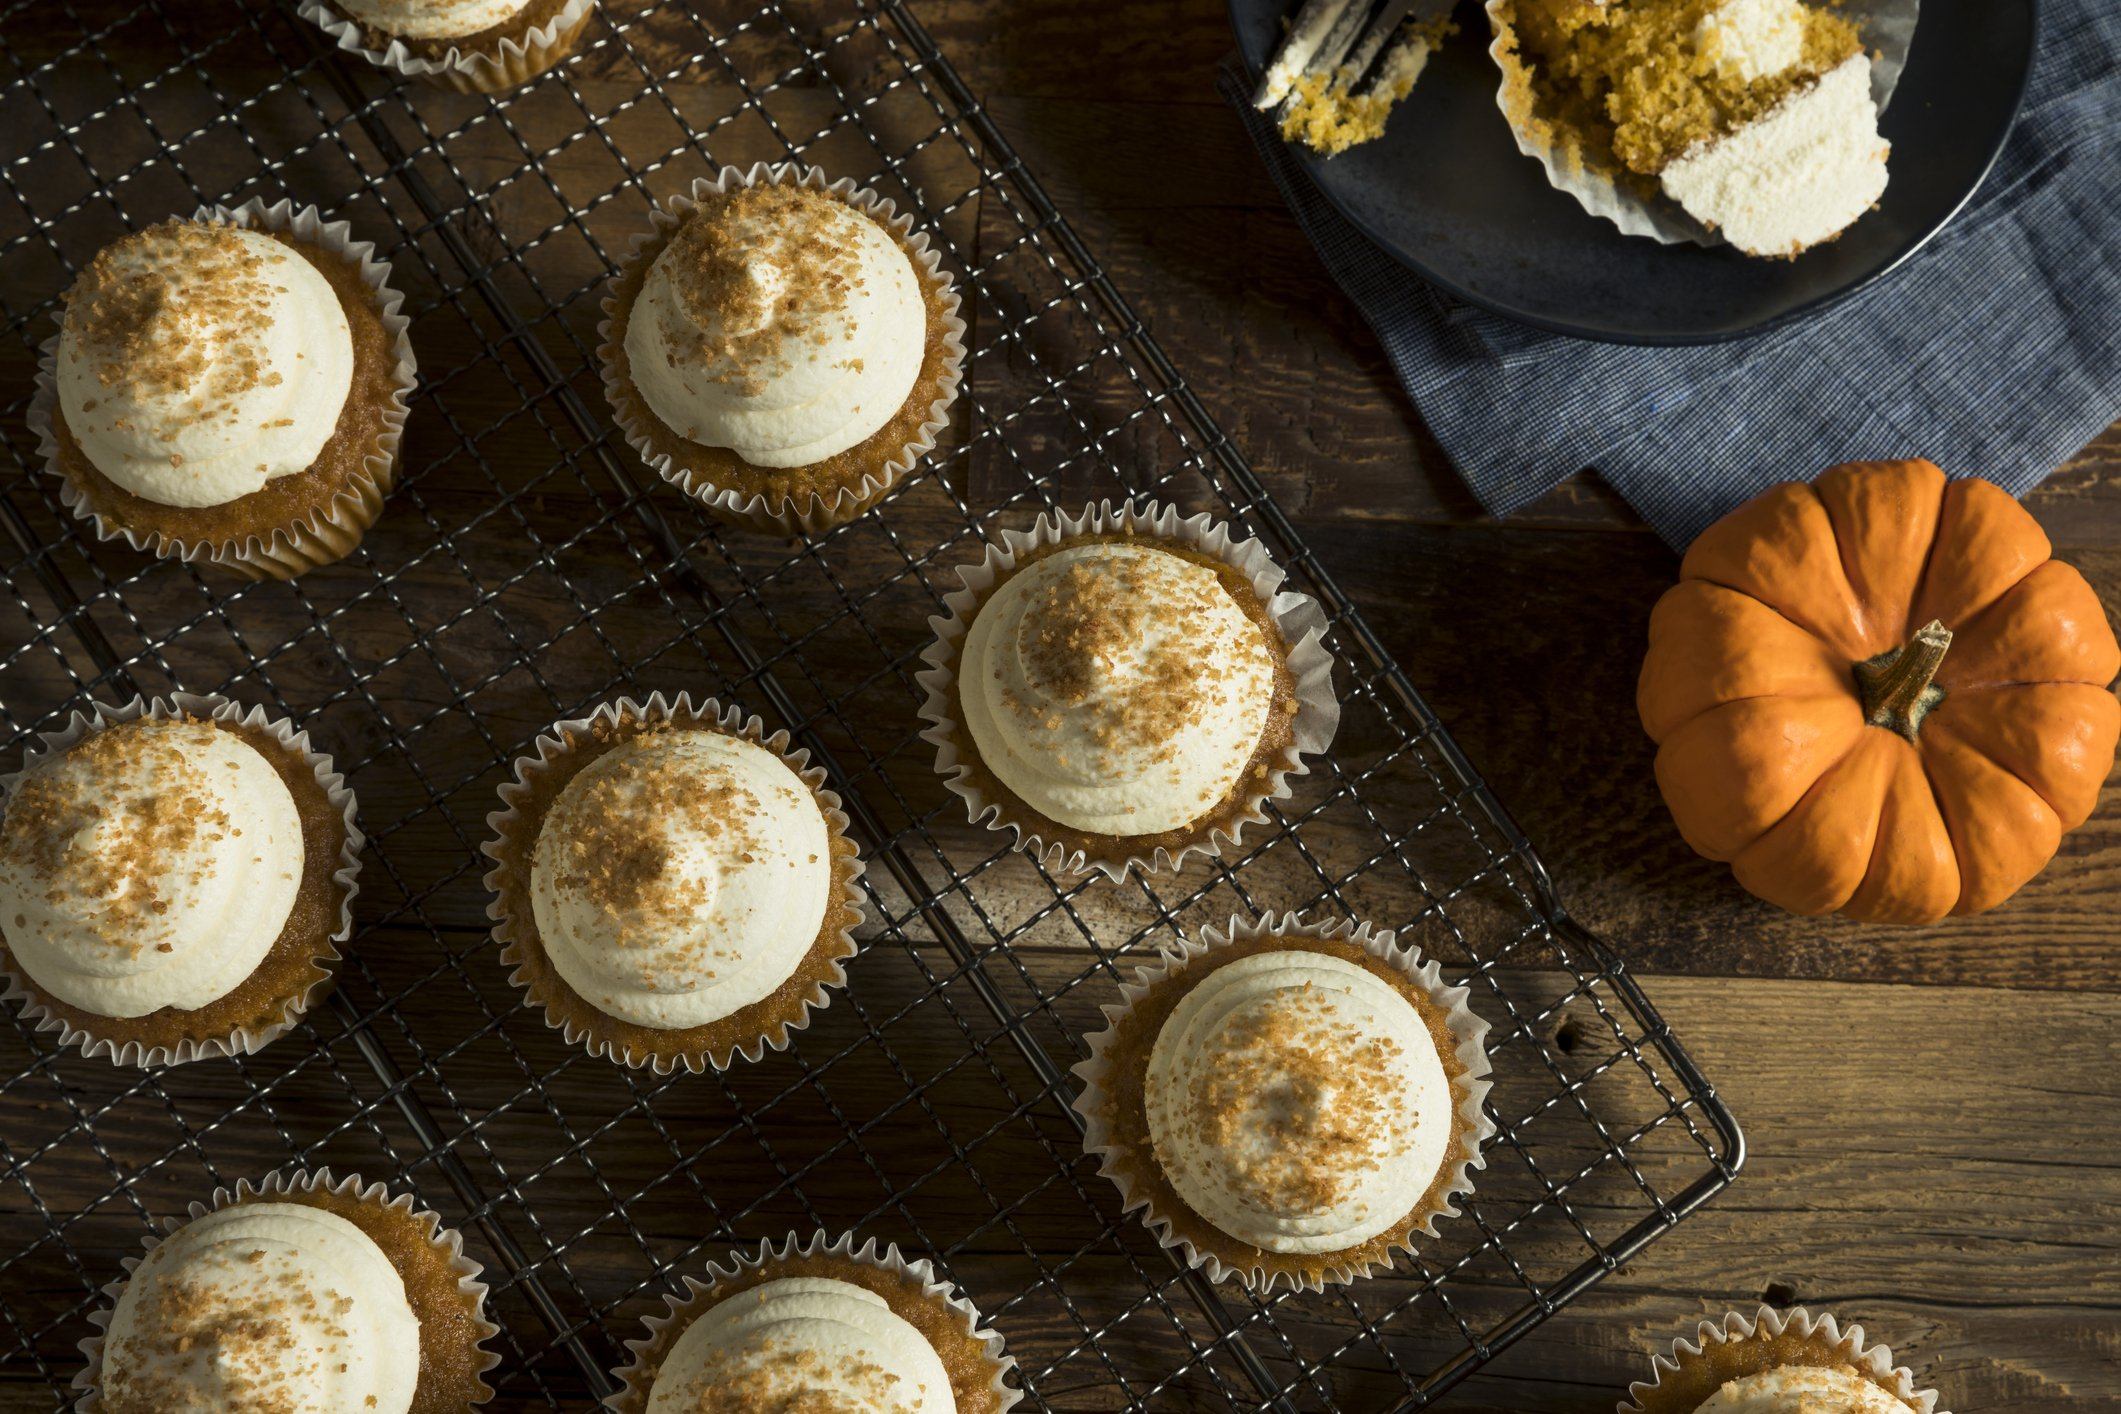 Barefoot Contessa Pumpkin Muffins The Barefoot Contessa S Pumpkin Spice Cupcakes With Maple Frosting